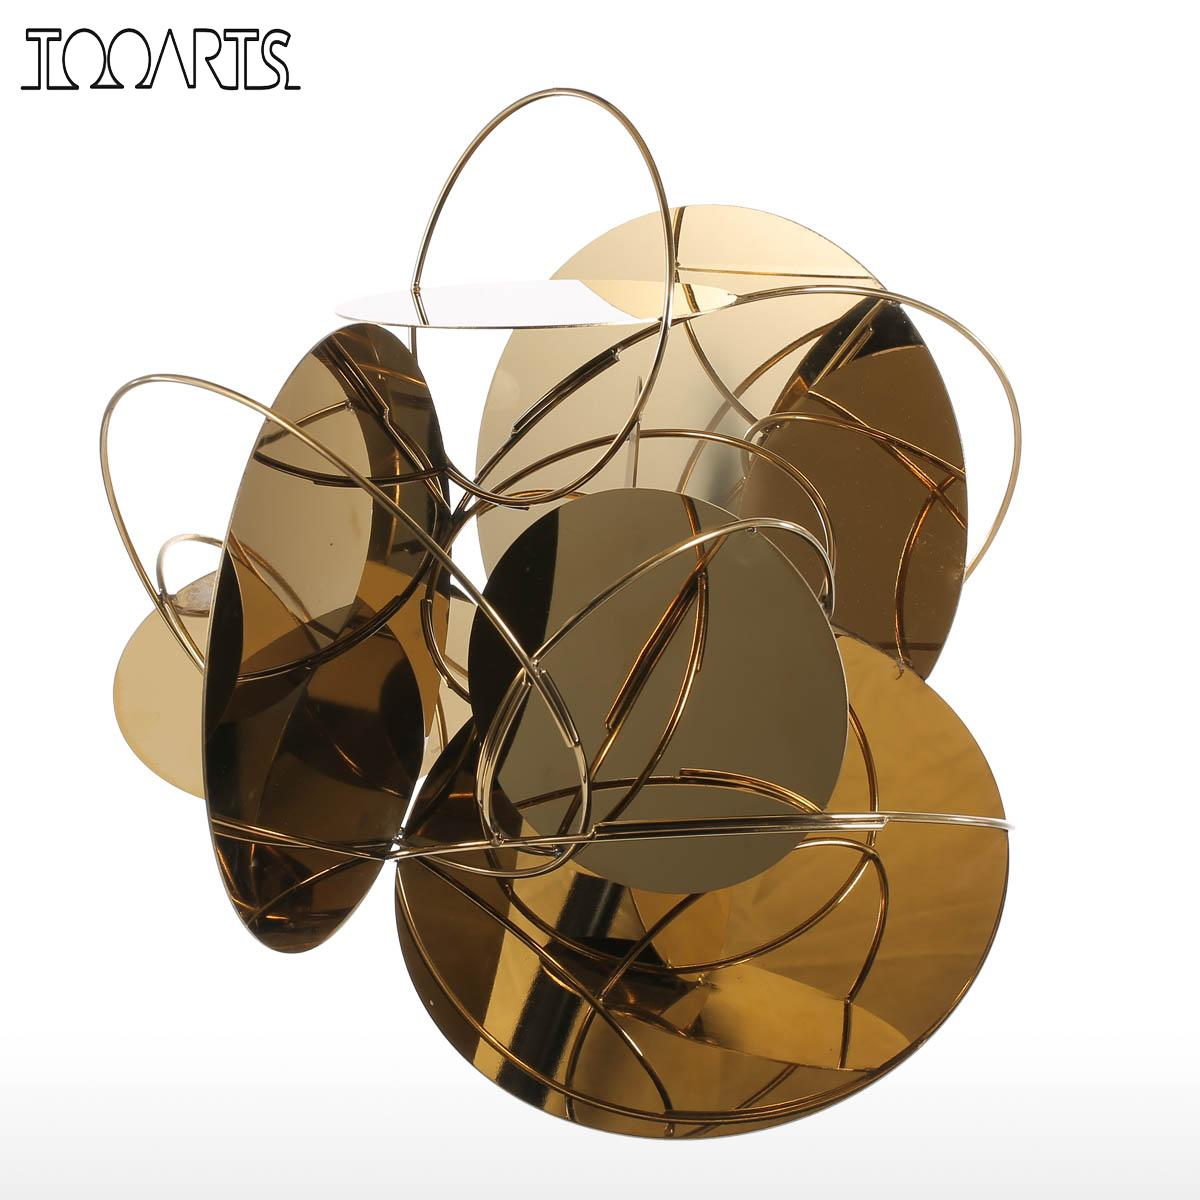 Tooarts Golden <font><b>Mirror</b></font> Modern Figurines Home Decor Abstract Crafts Ornament Metal Sculpture Interior Home Decoration Accessories